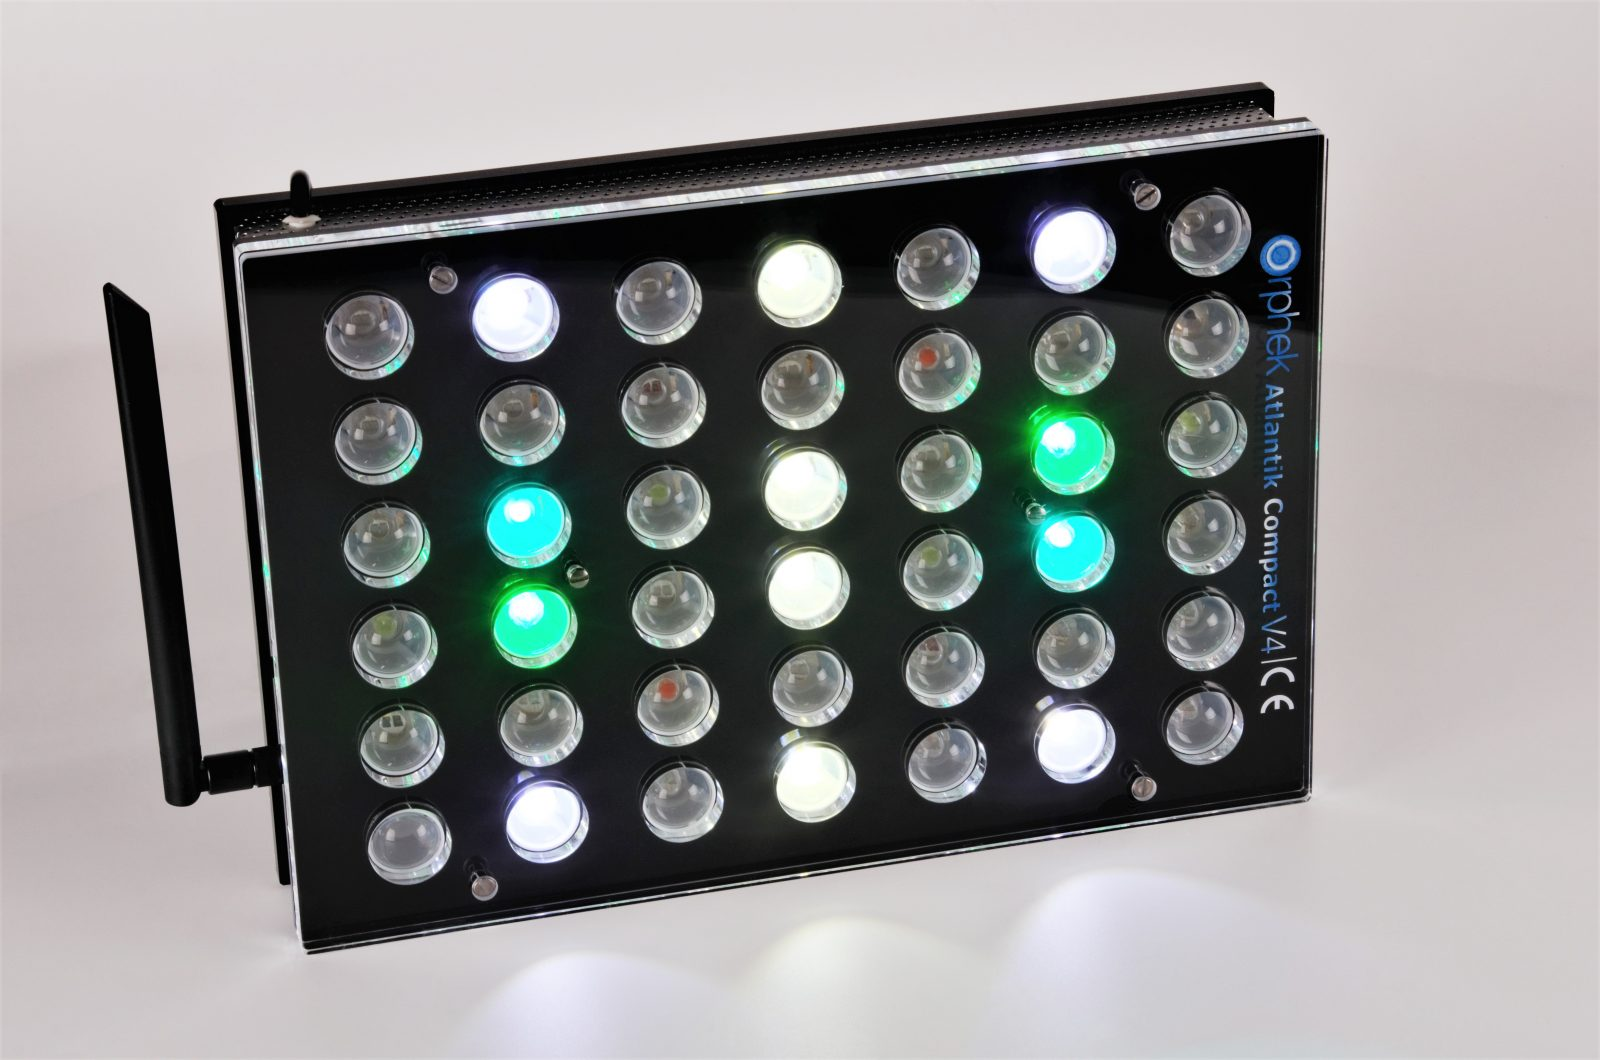 Orphek-Aquarium-LED-Lighting-Atlantik -Compact-V4-light -on通道1